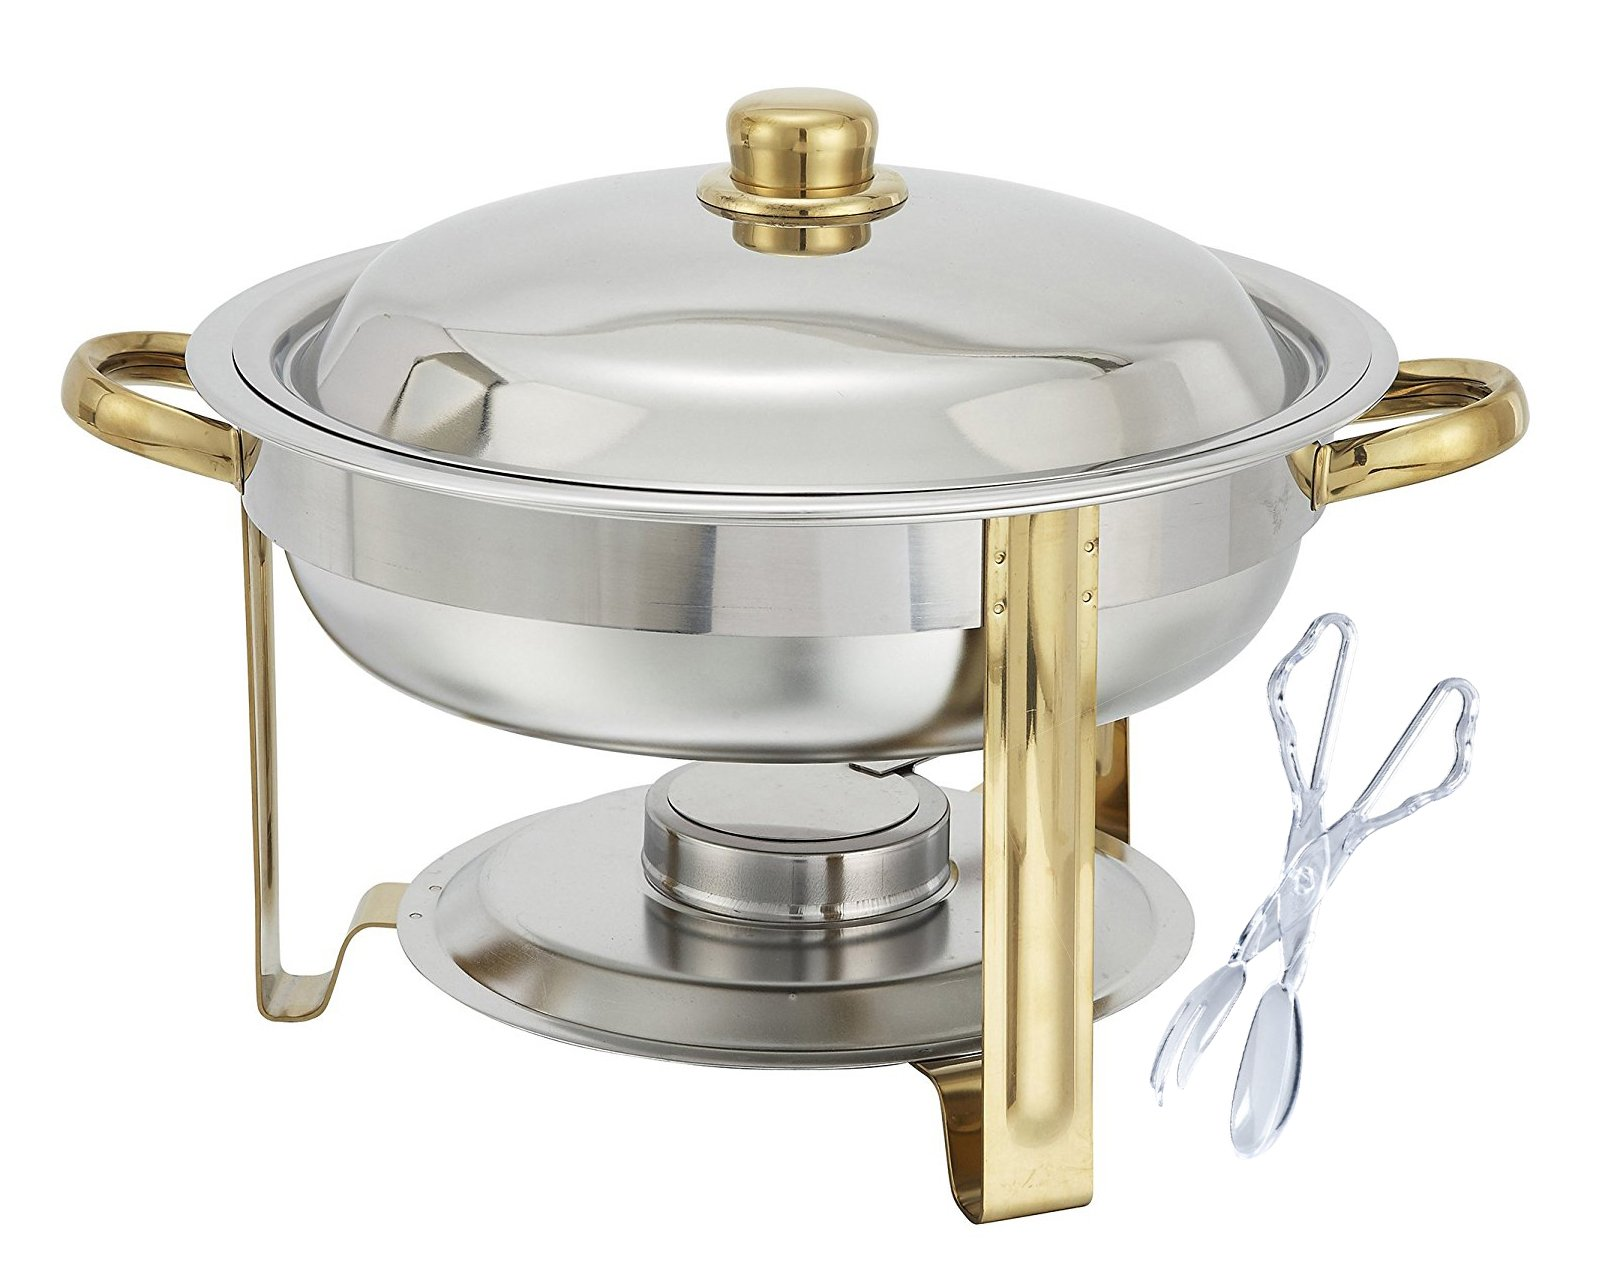 Tiger Chef 4 Quart Round Chafing Dish Buffet Warmer Set, Gold Accented Chafer, Includes a Plastic Tong